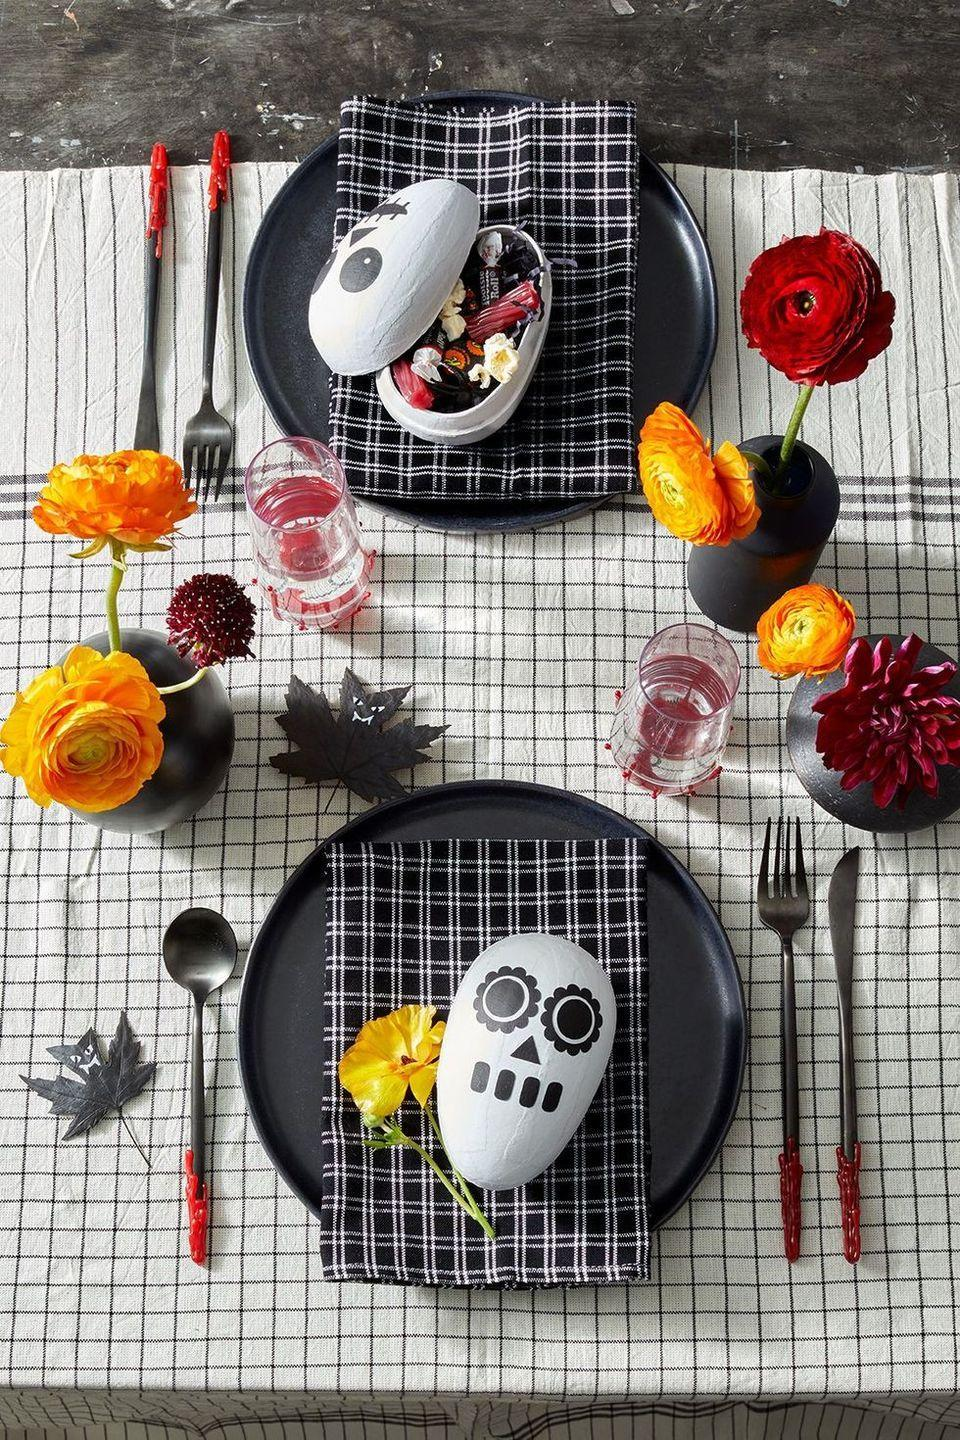 """<p>Once you create these little skull candy holders you can place one at each tablesetting as a sweet surprise for your guests. To make, spray paint all of the egg boxes white inside and out and let dry completely. Cut out the <a href=""""https://www.printables4mom.com/9-printable-skeleton-crafts/"""" rel=""""nofollow noopener"""" target=""""_blank"""" data-ylk=""""slk:skeleton face templates"""" class=""""link rapid-noclick-resp"""">skeleton face templates</a> out of black craft paper with scissors or a craft knife or make your own! Glue on the paper face pieces using a light layer of tacky glue and make sure you securely press down the pieces since the egg is round. </p>"""